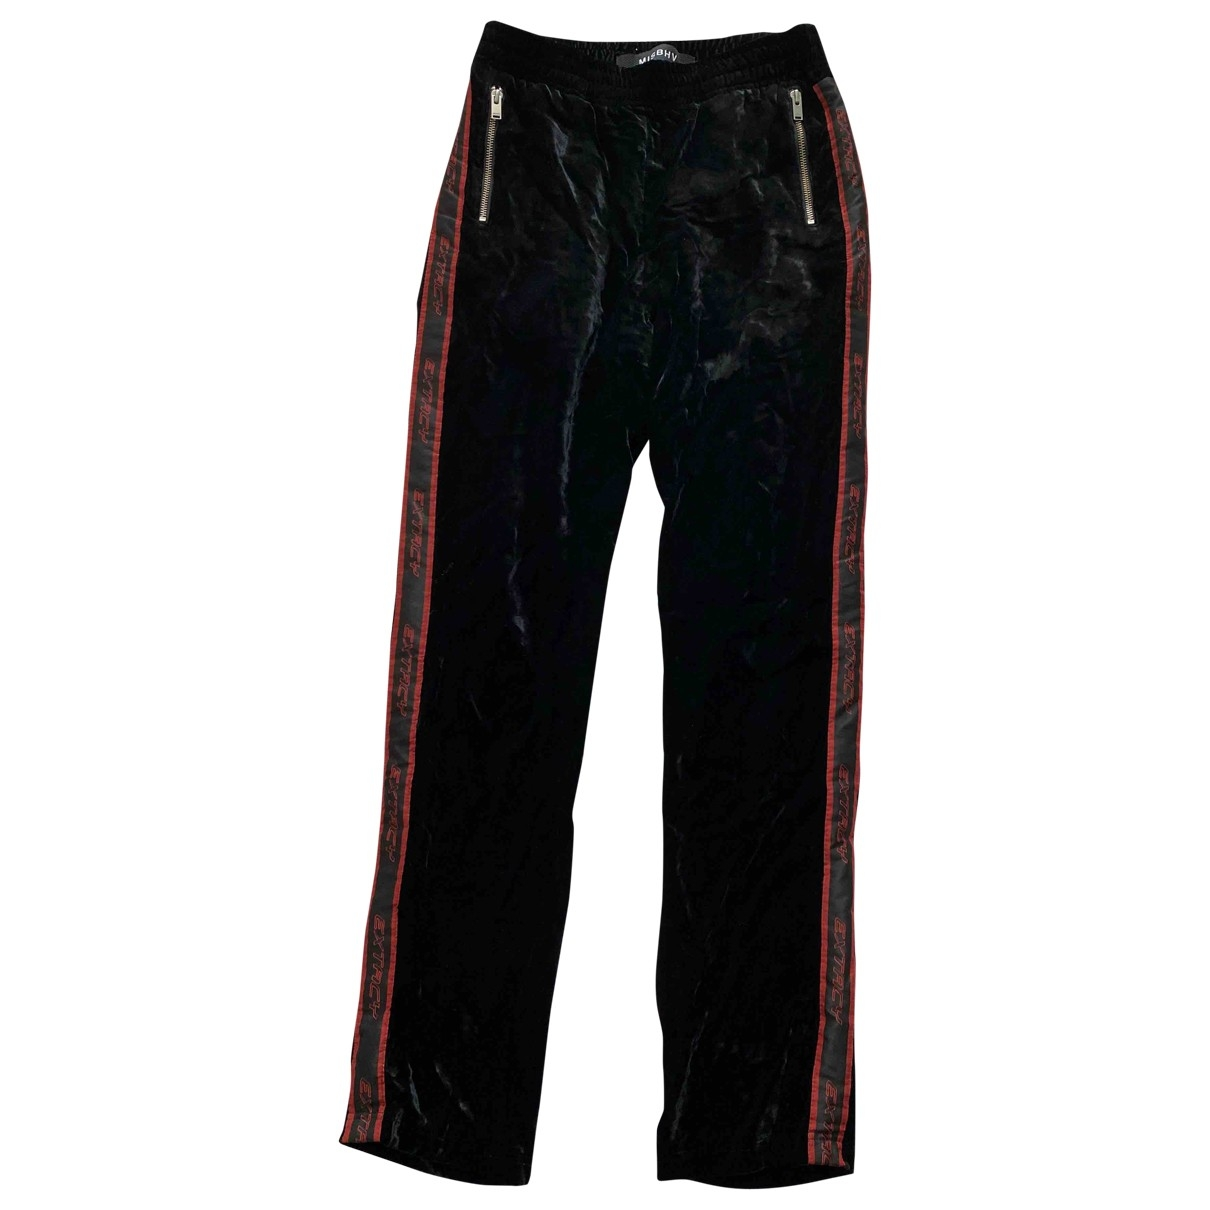 Misbhv \N Black Trousers for Men S International